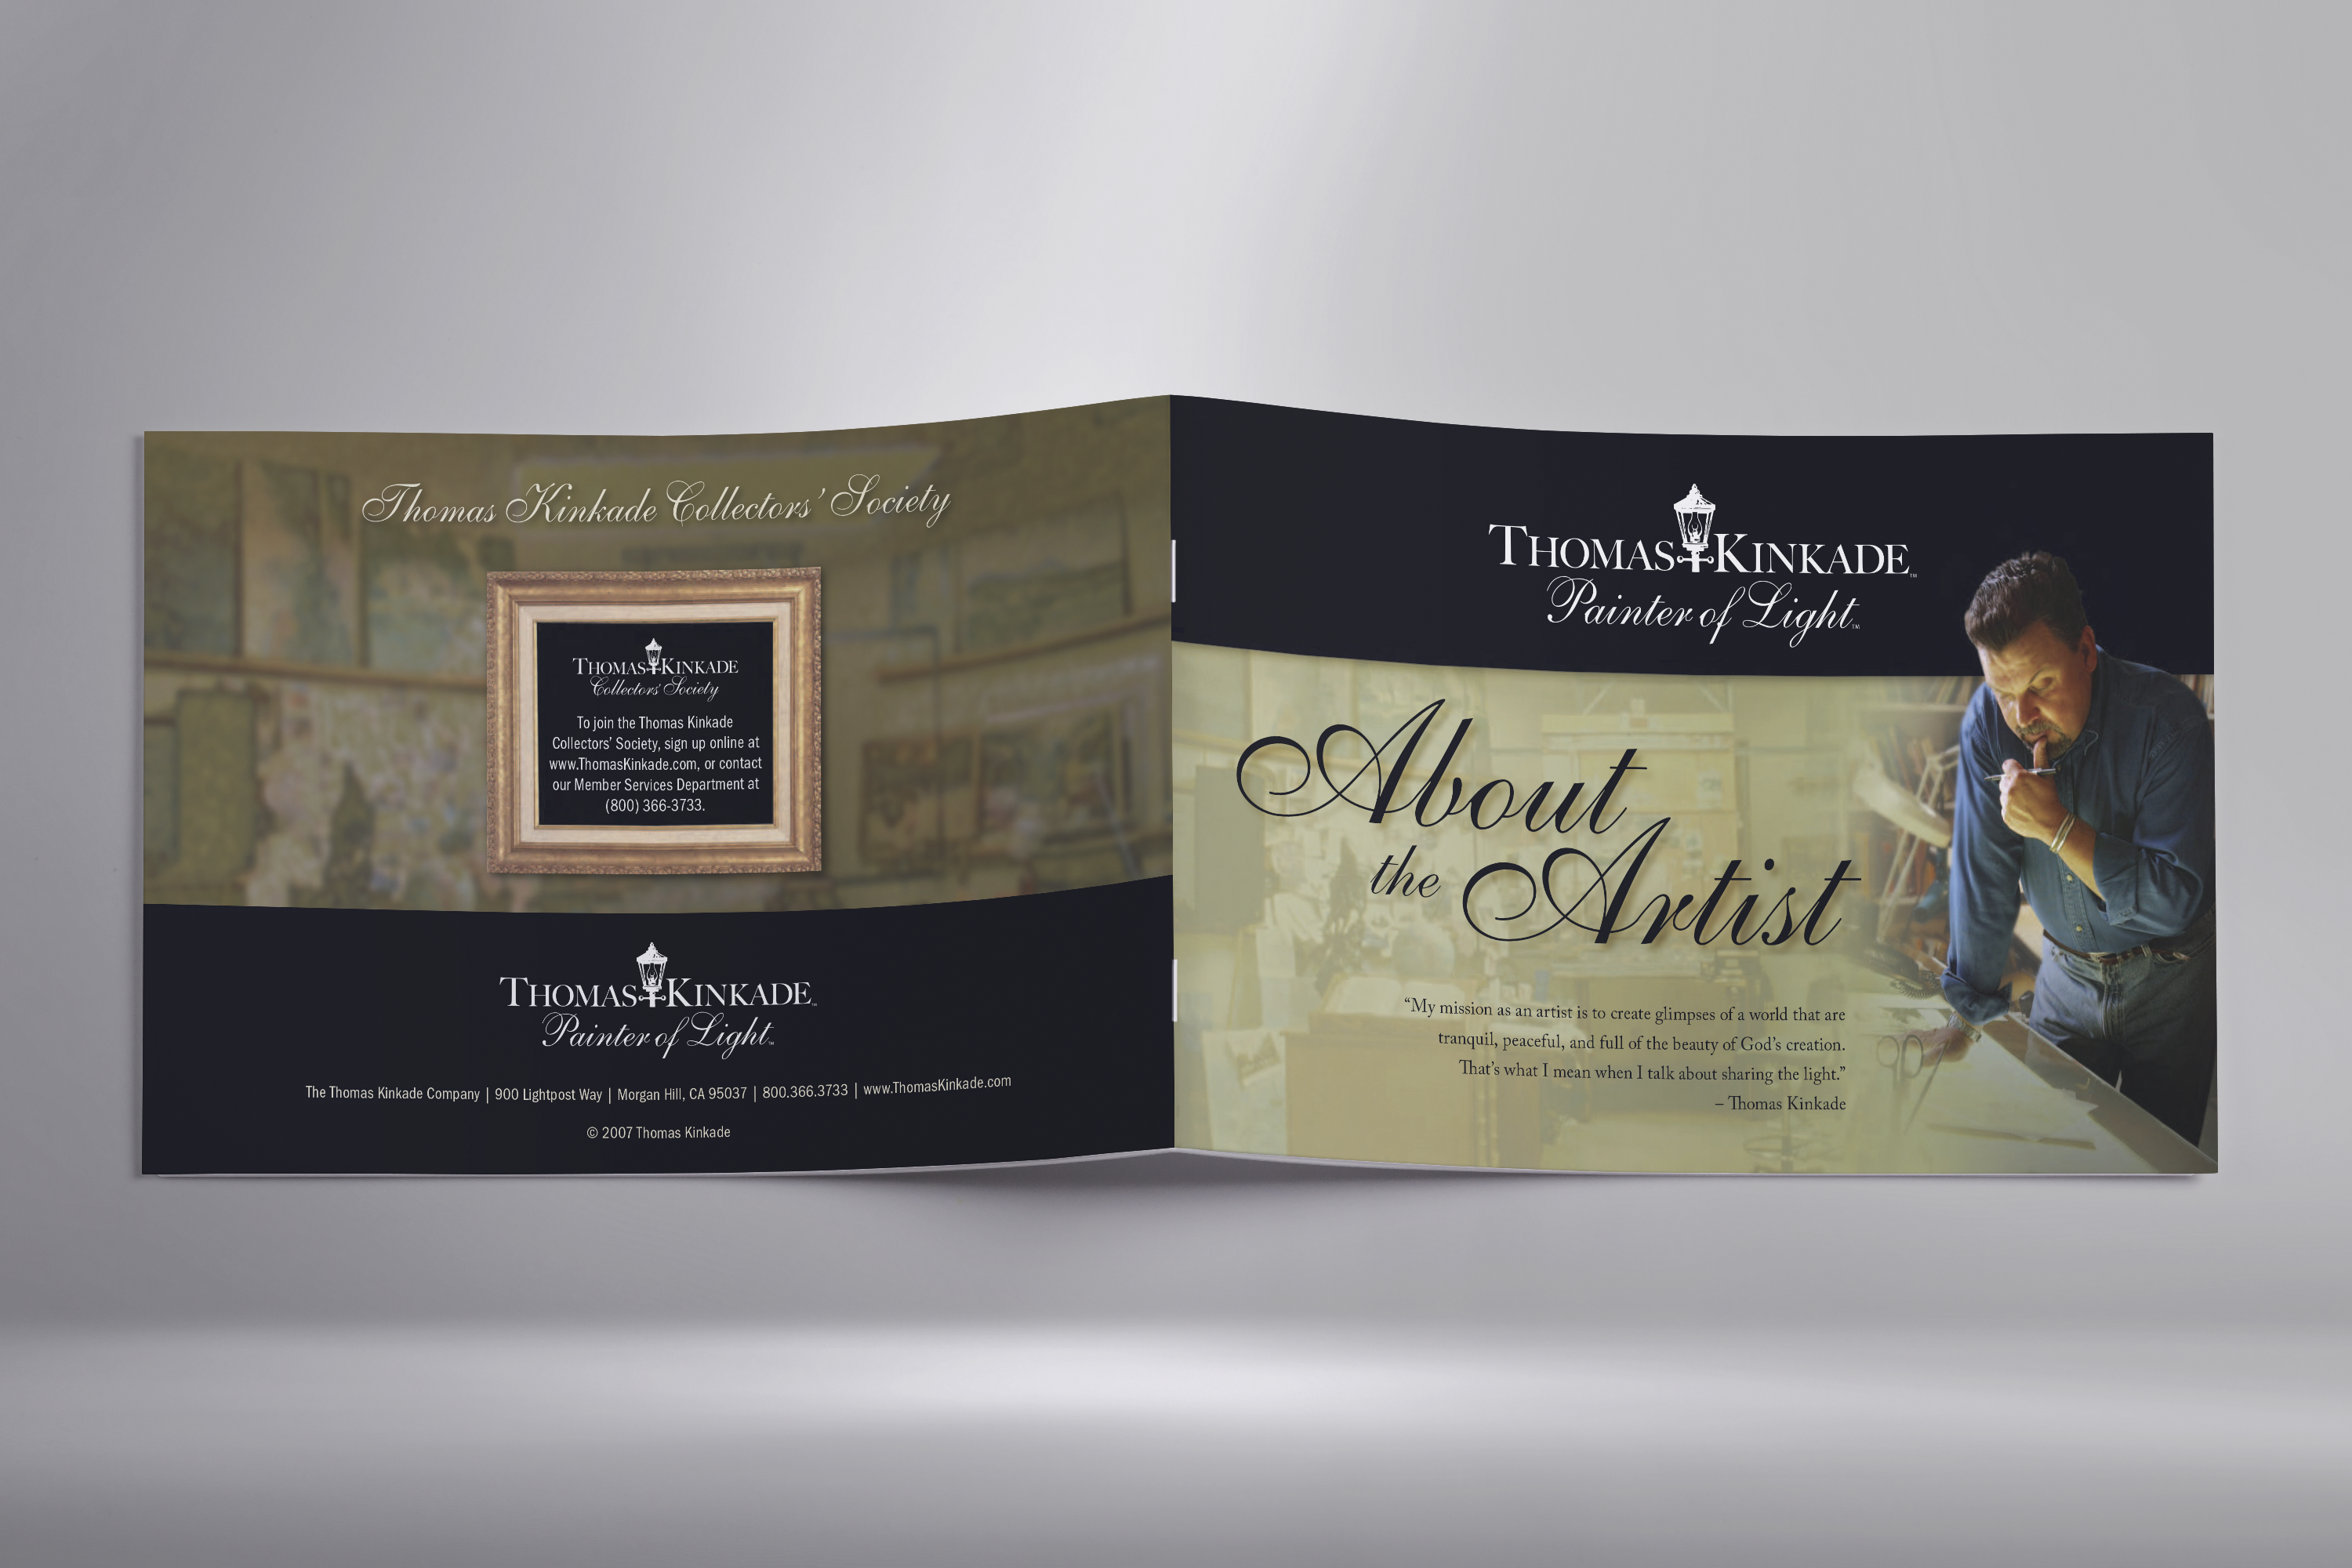 Print Design | About the Artist - Thomas Kinkade Front and Back Cover